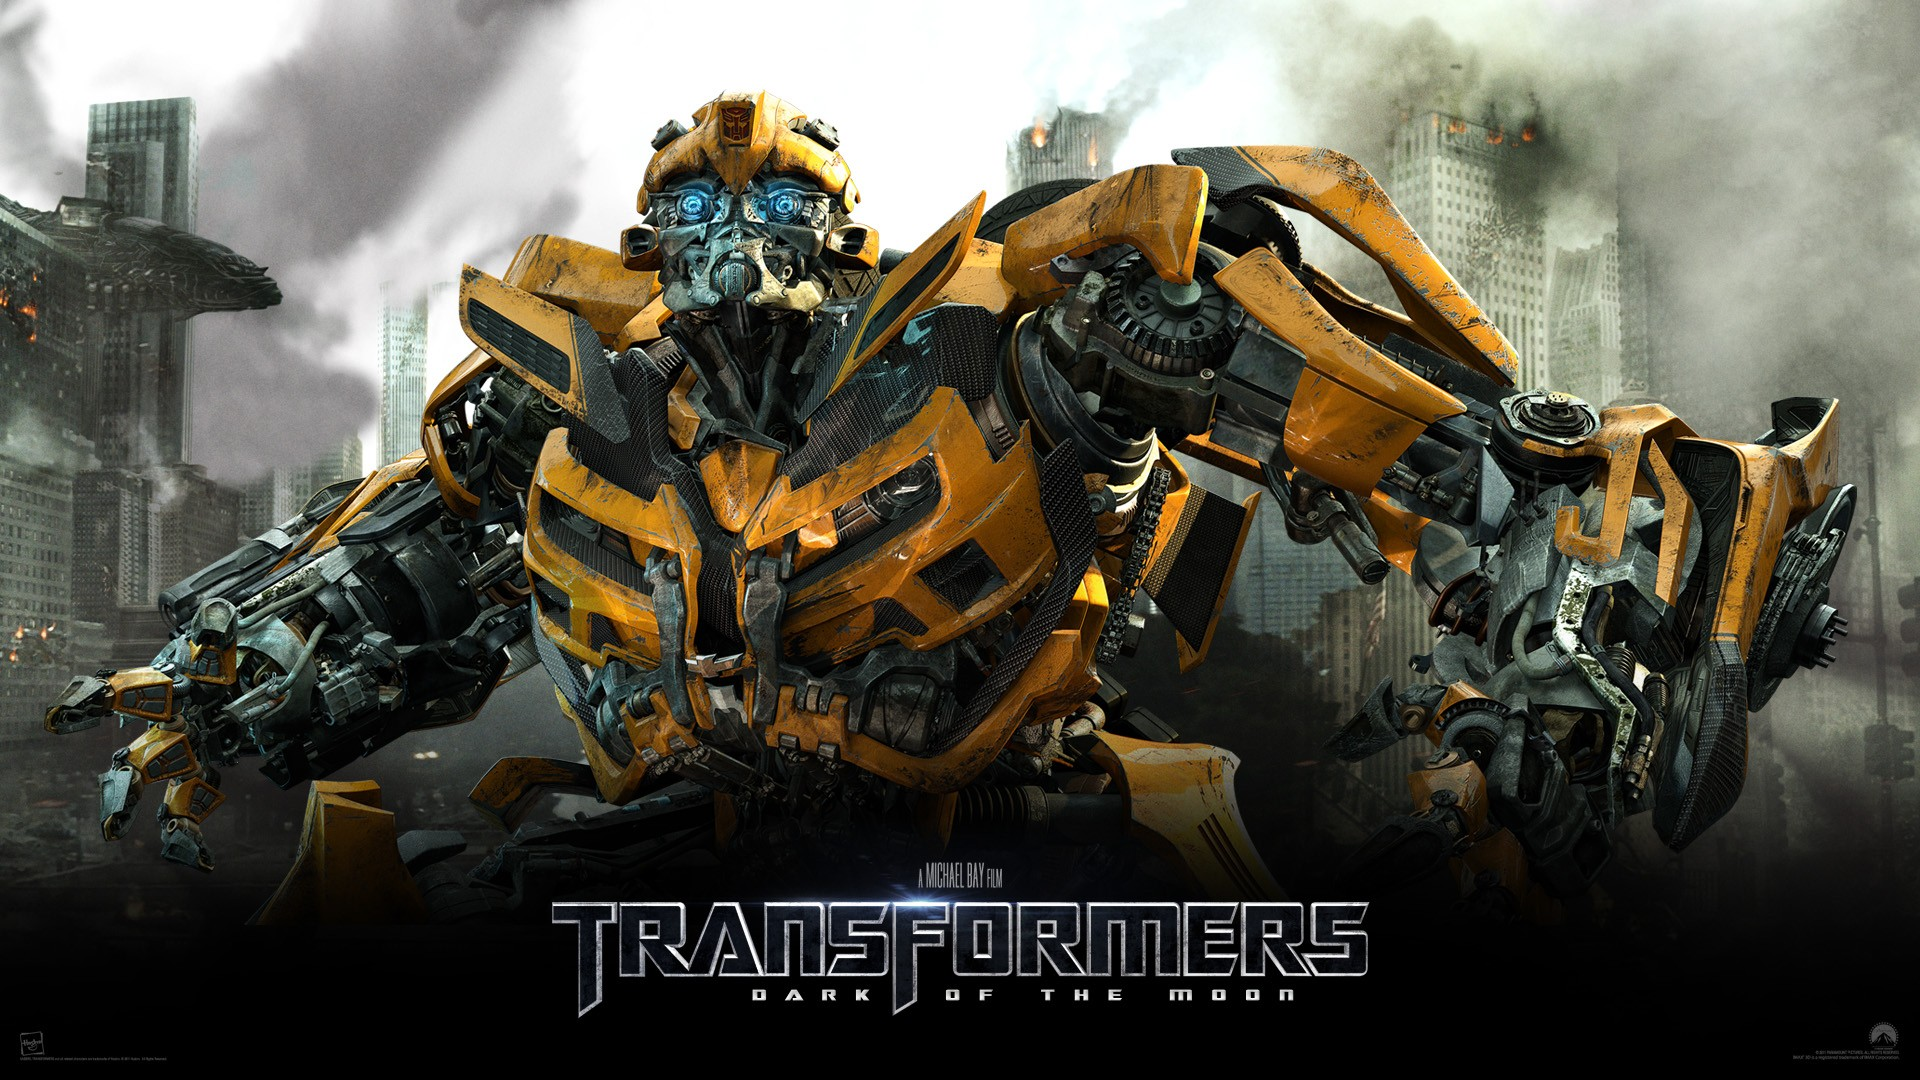 download desktop wallpaper yellow transformer from the movie